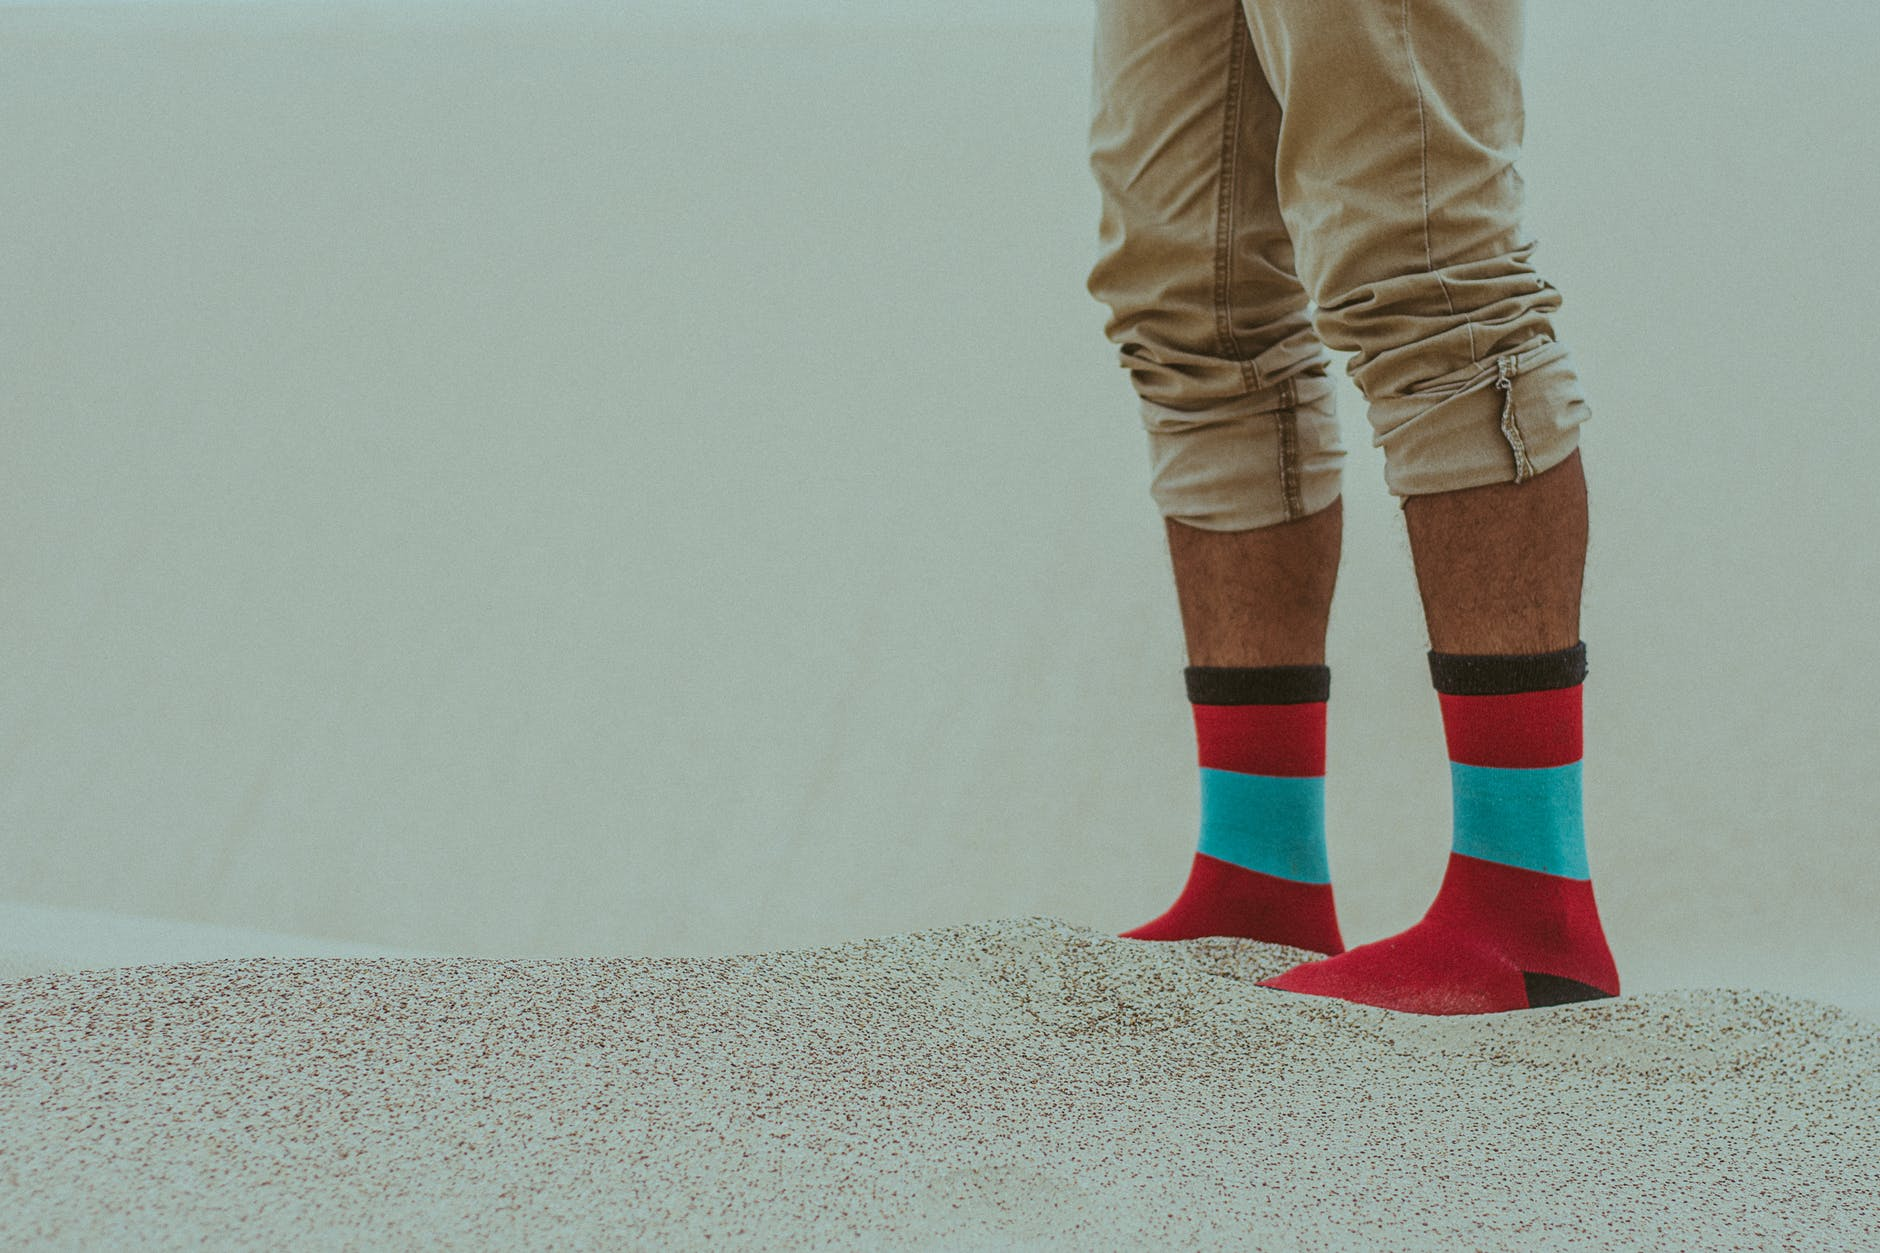 person wearing red socks walking on sand